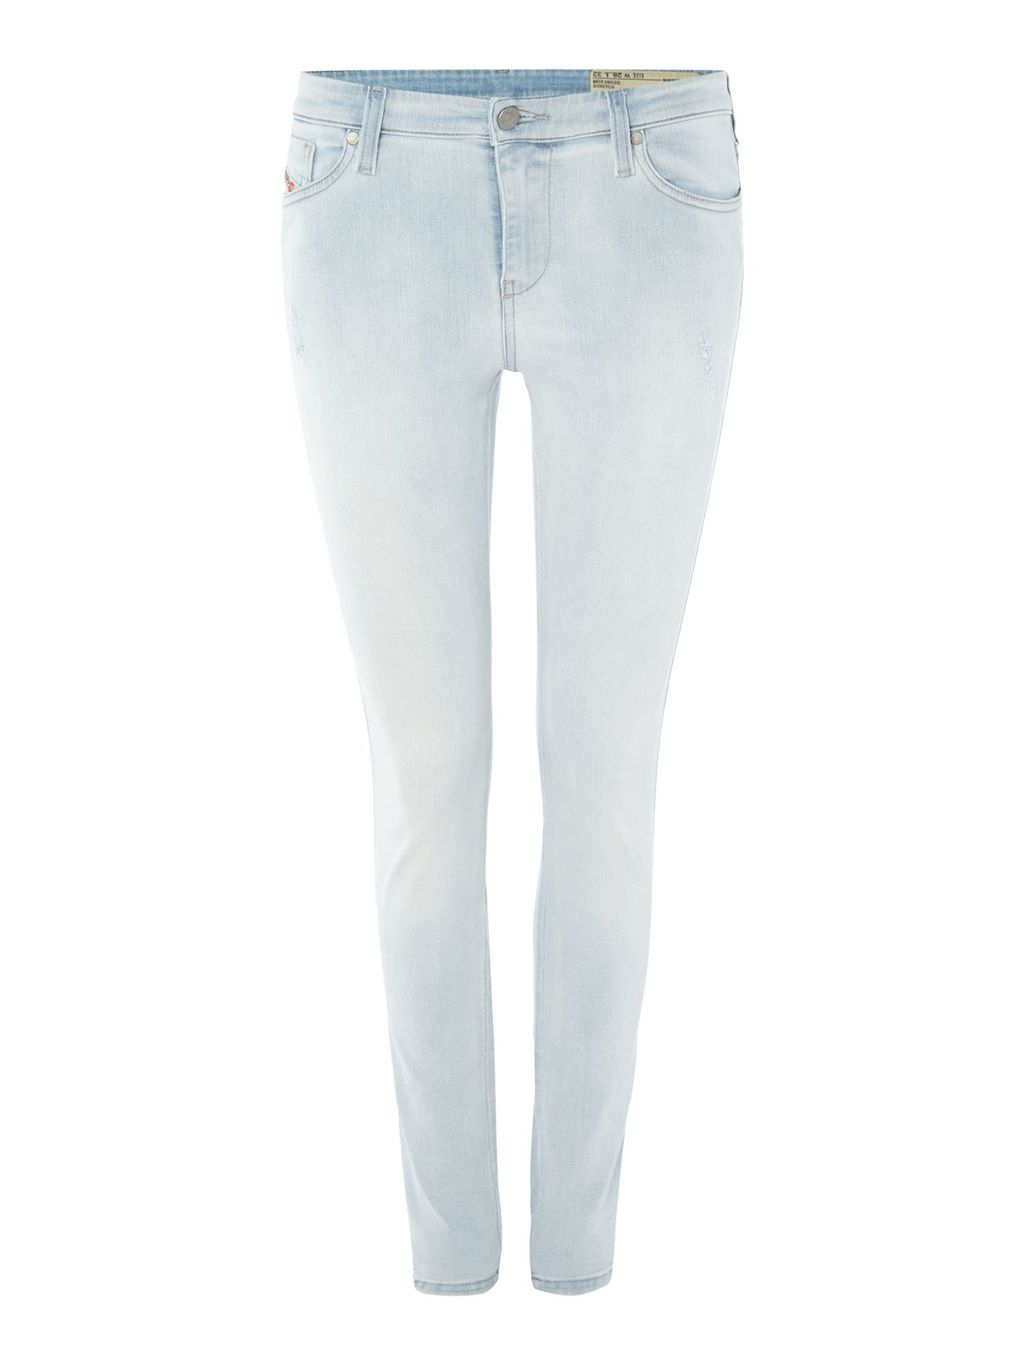 Skinzee 0852 Q Skinny Jeans, Blue - style: skinny leg; length: standard; pattern: plain; pocket detail: traditional 5 pocket; waist: mid/regular rise; predominant colour: pale blue; occasions: casual; fibres: cotton - stretch; texture group: denim; pattern type: fabric; season: s/s 2016